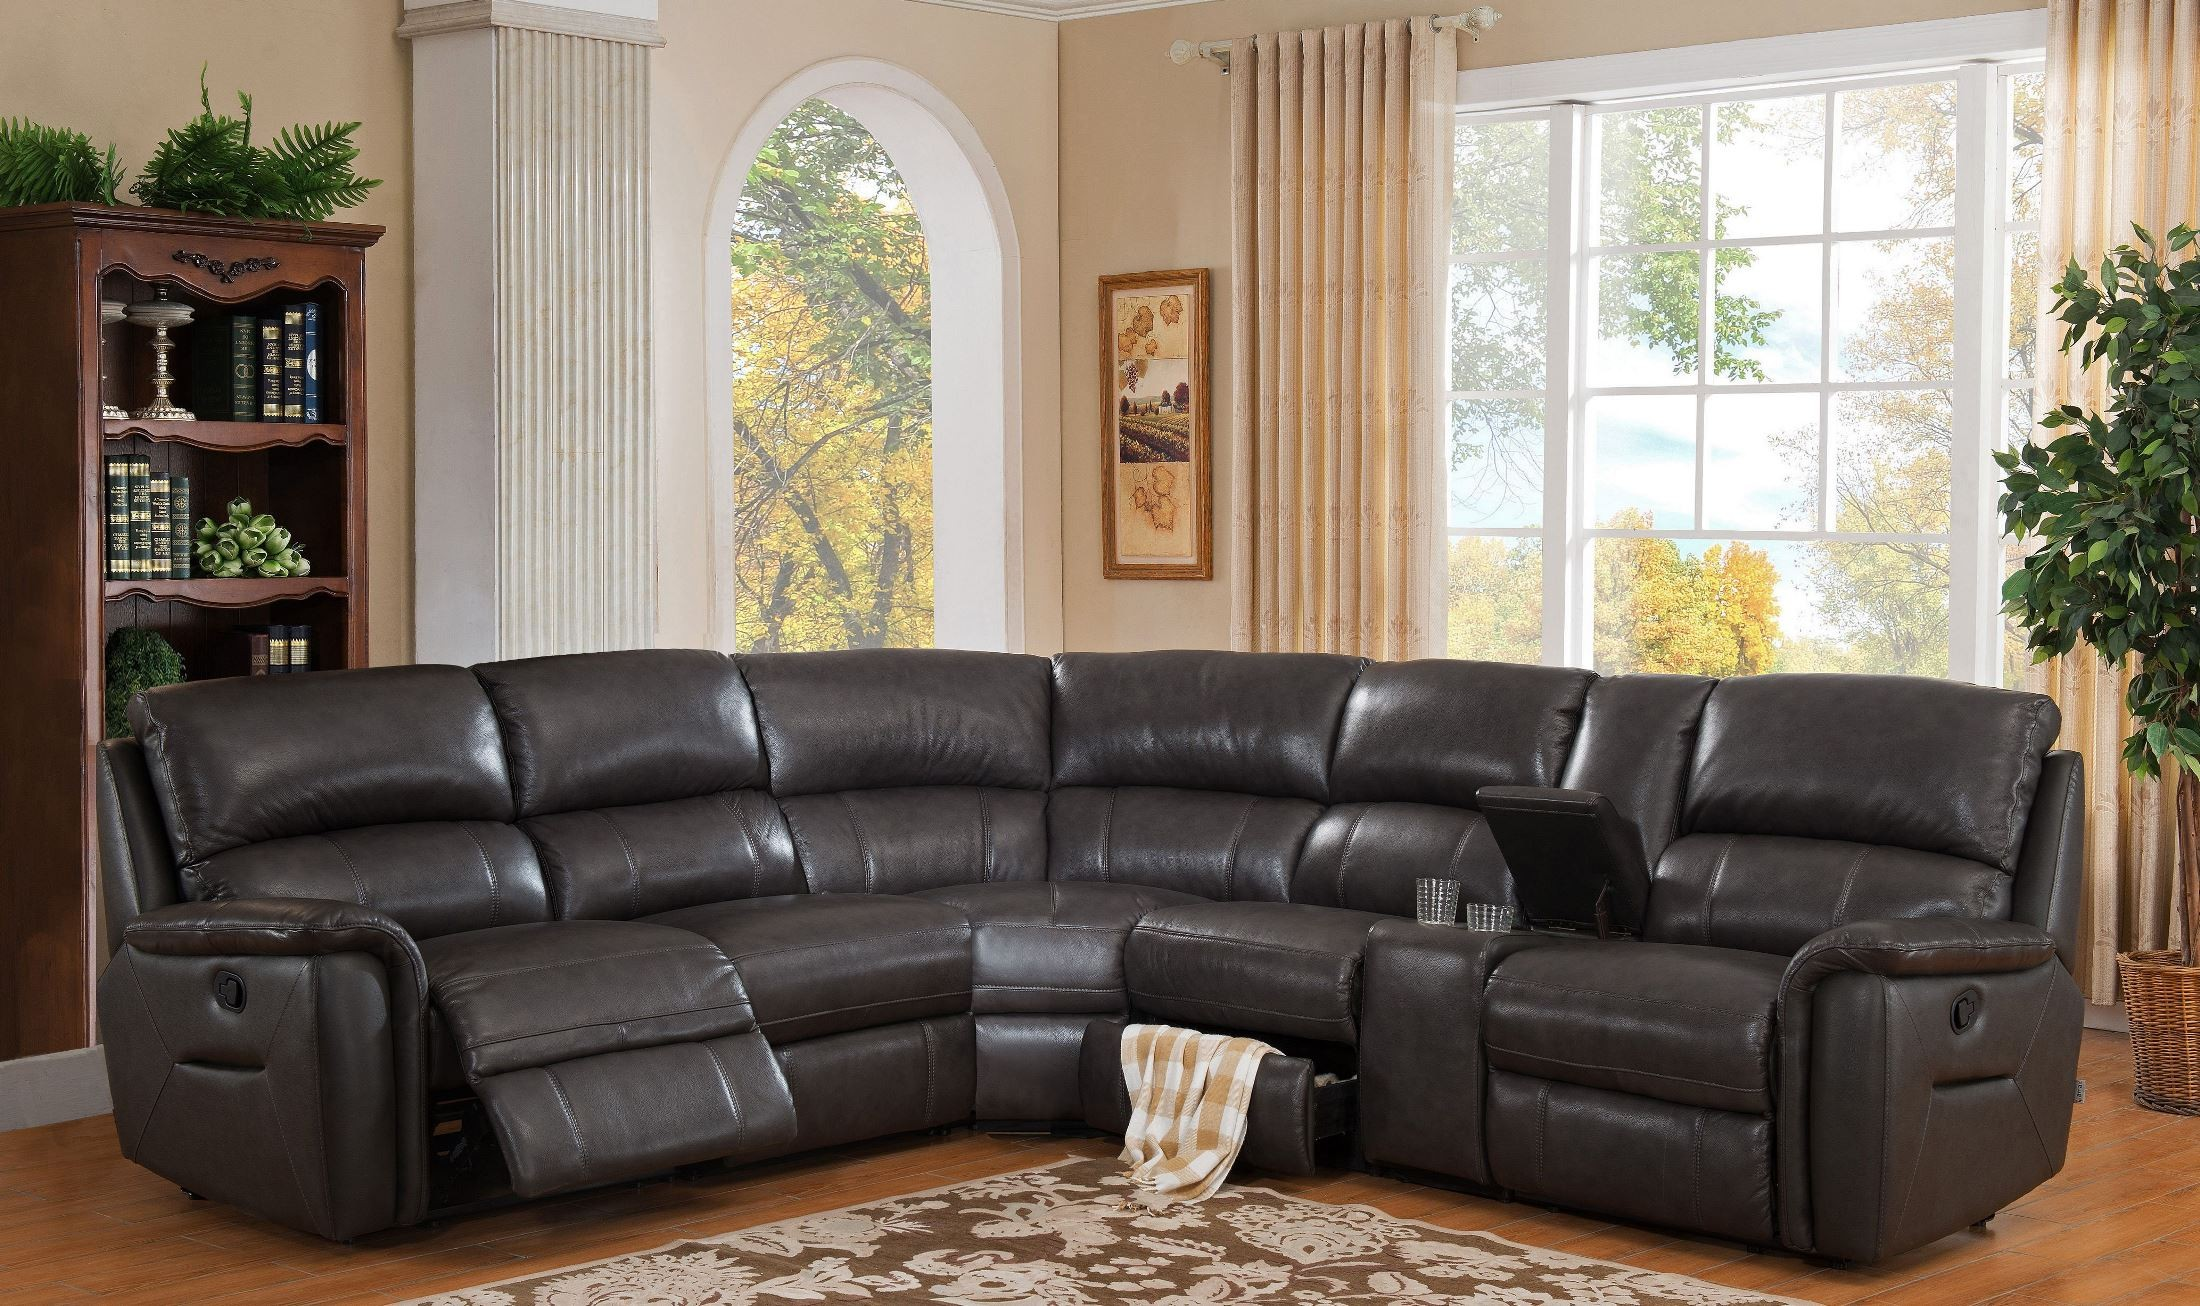 Camino Charcoal Grey Reclining Sectional from Amax Leather